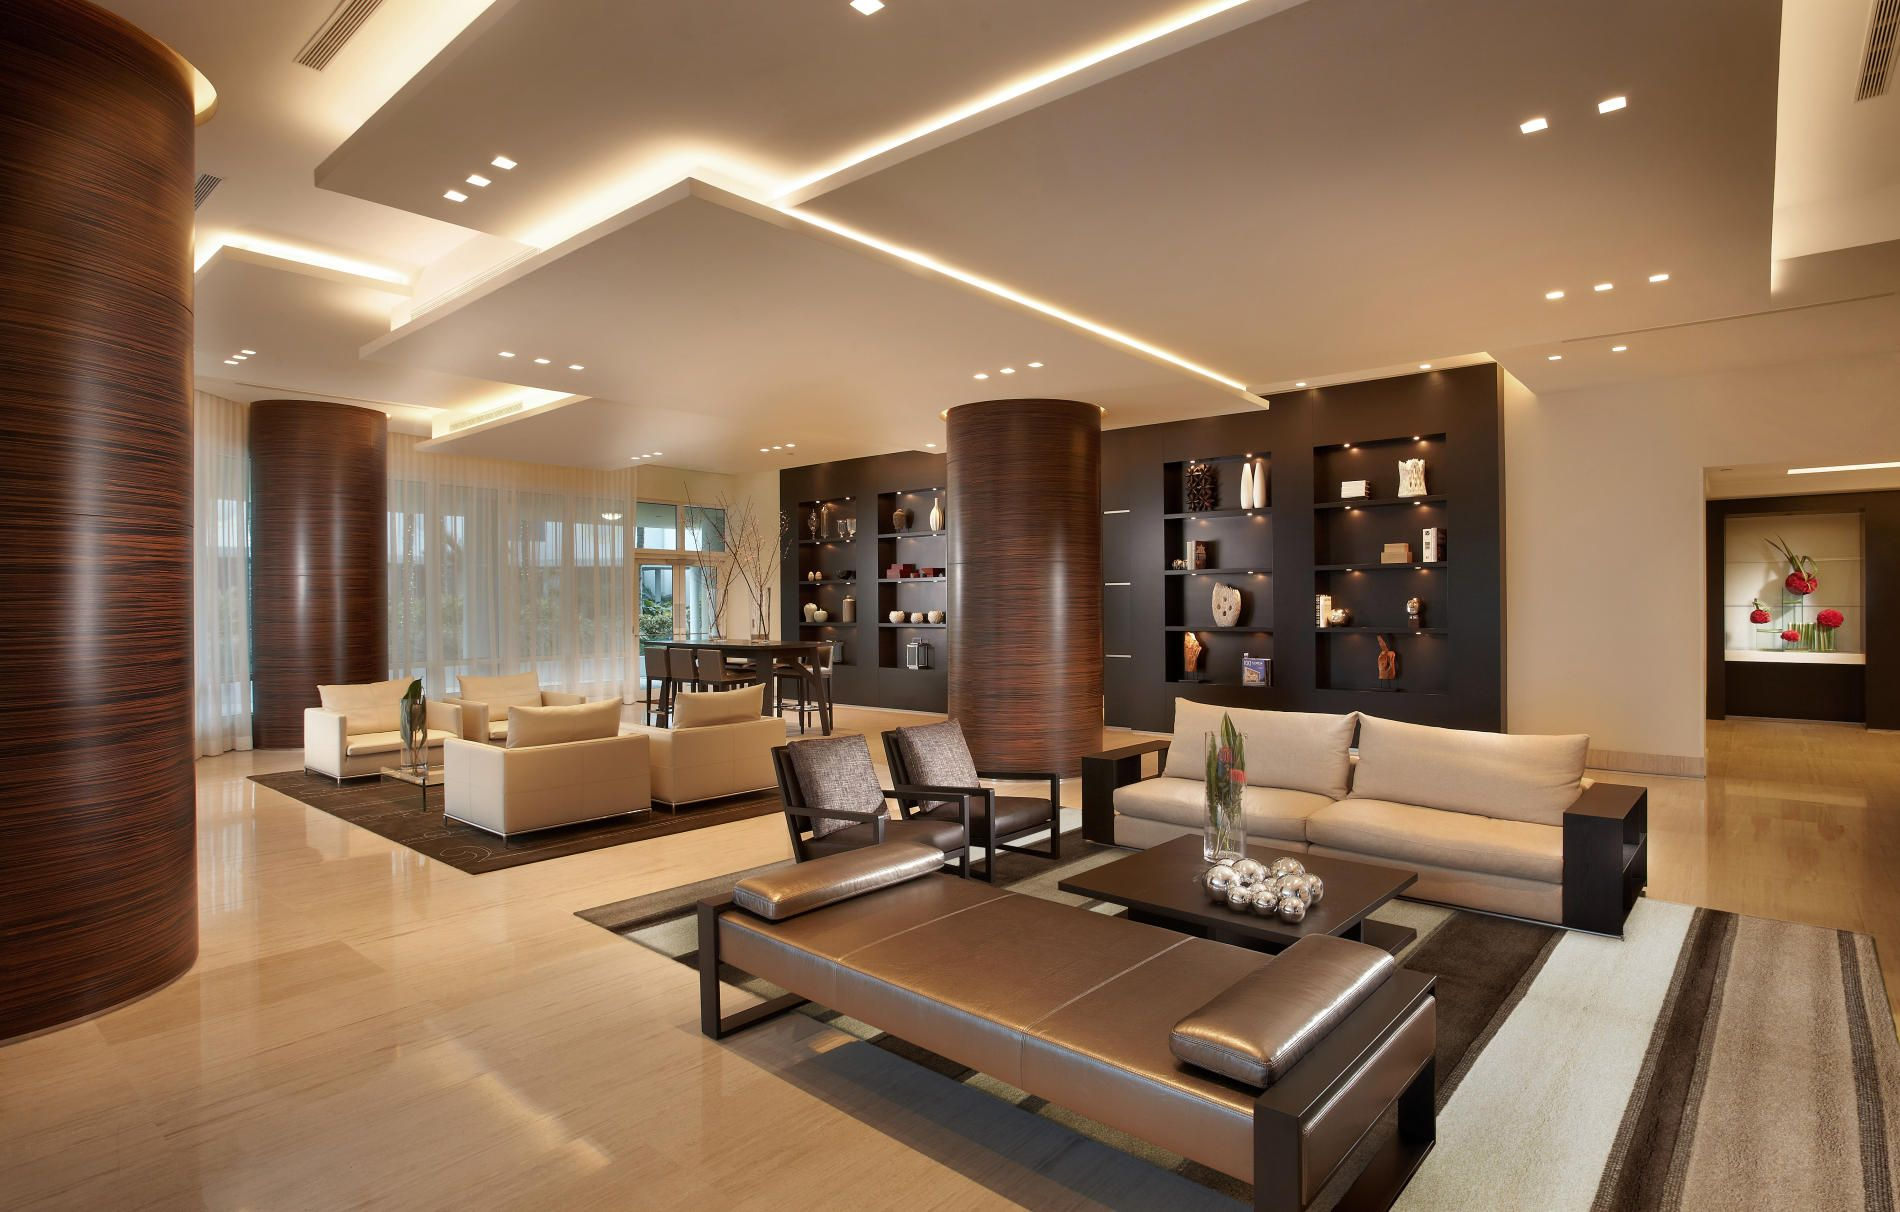 Modern Office Lobby Interior Design Neutral Color Theme Accents